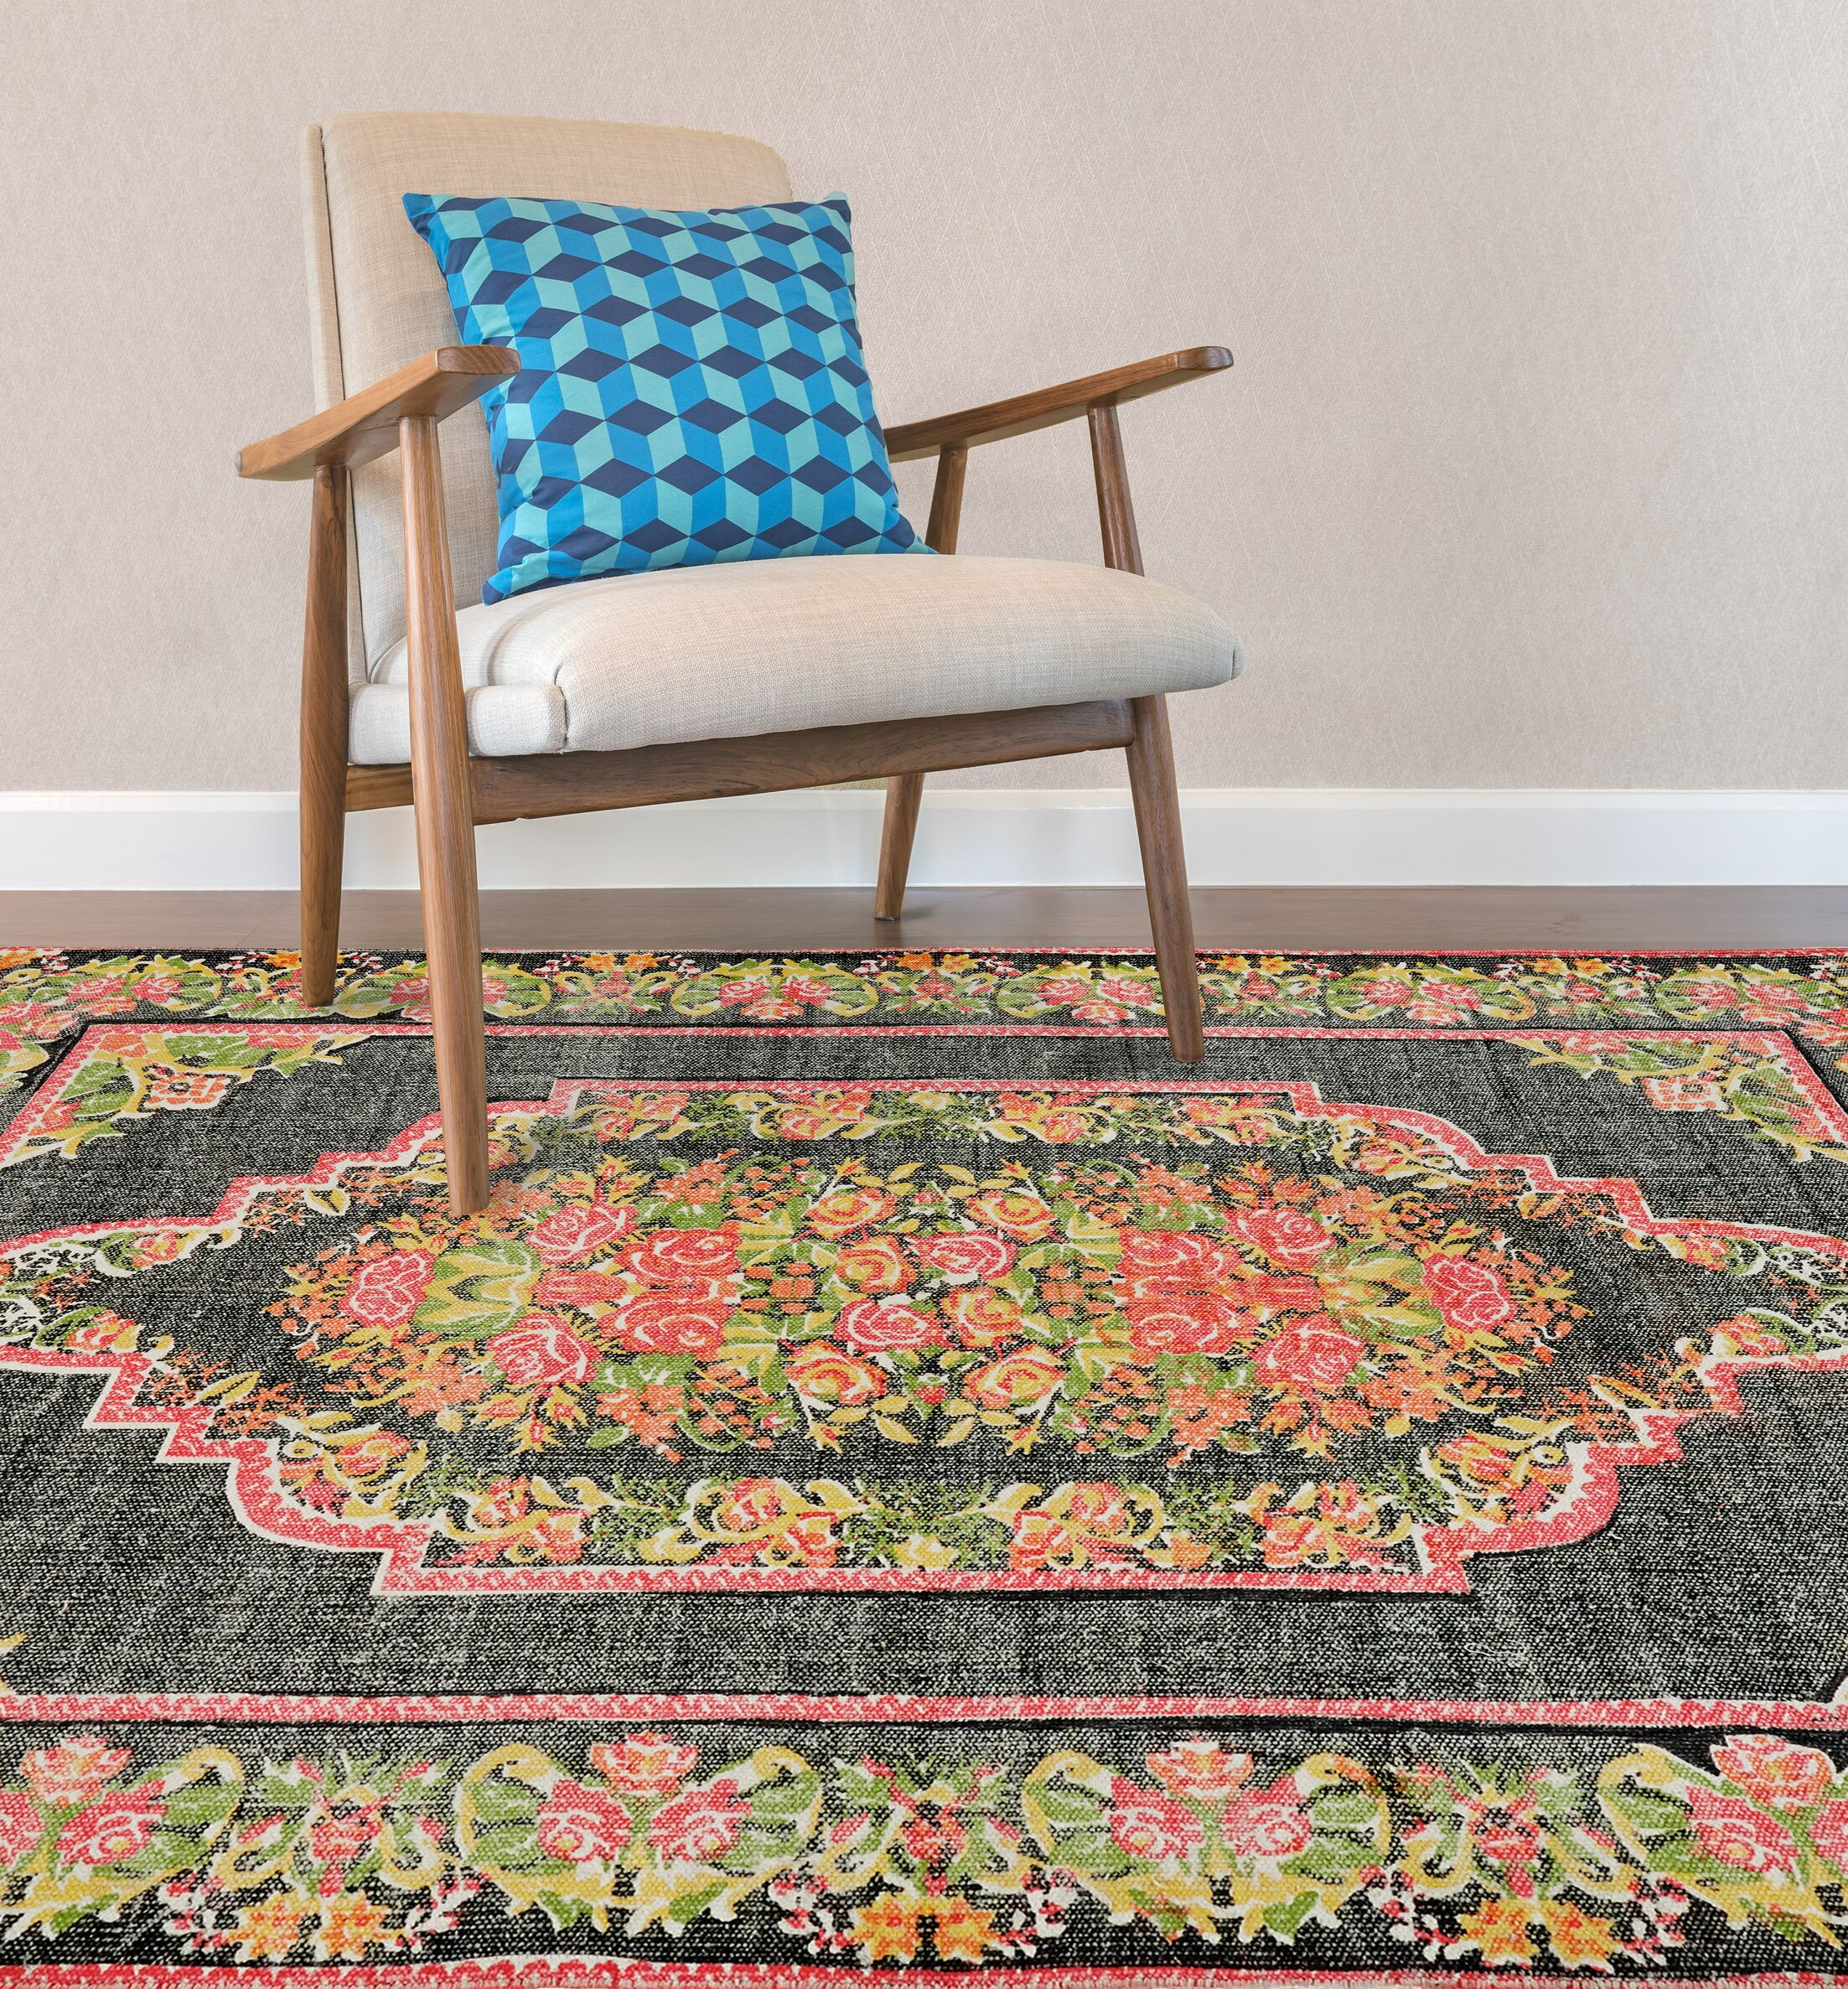 Jeremie Hand-Woven Gray/Green/Pink Area Rug Rug Size: Rectangle 5' x 8'